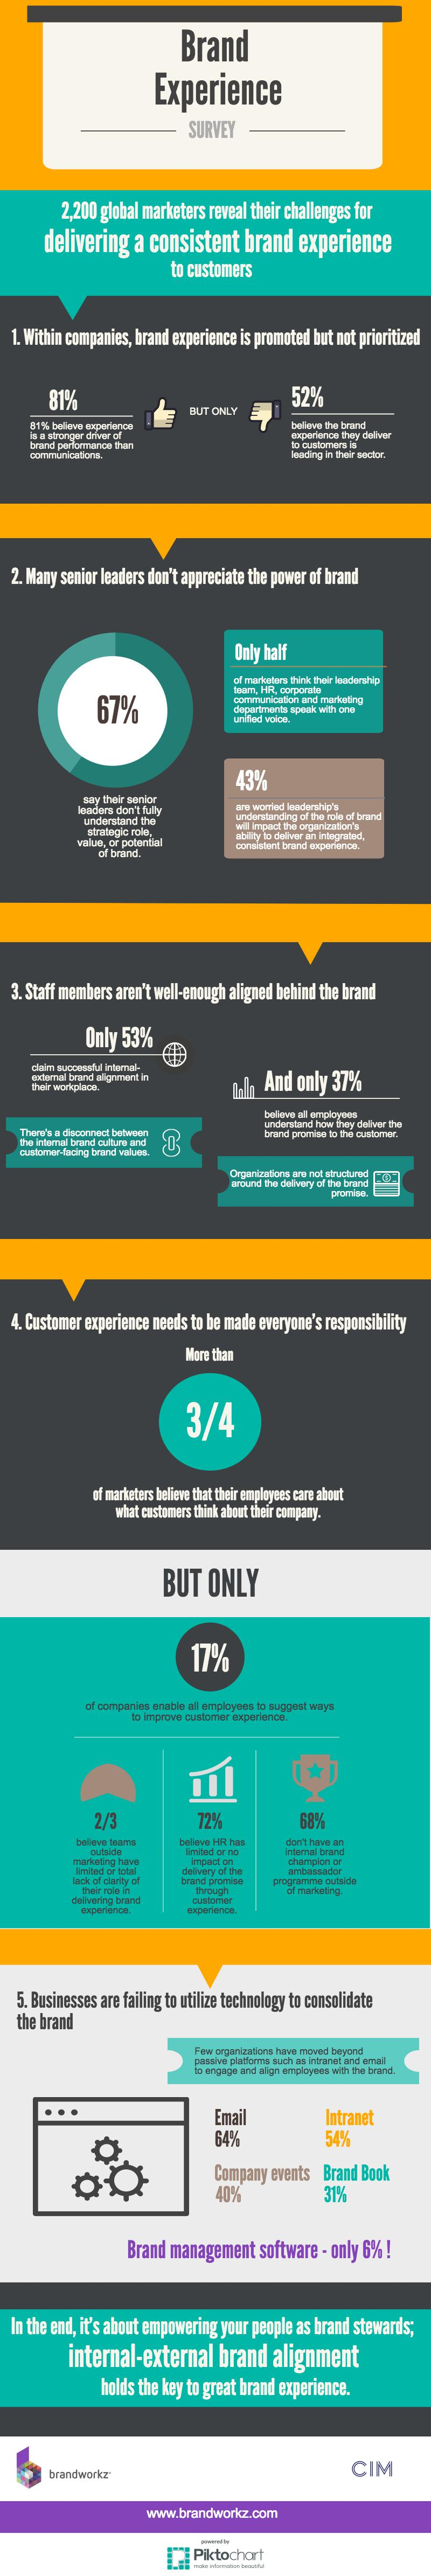 Consistent Brand Experience Five Challenges For Marketers In Delivering The Infographic